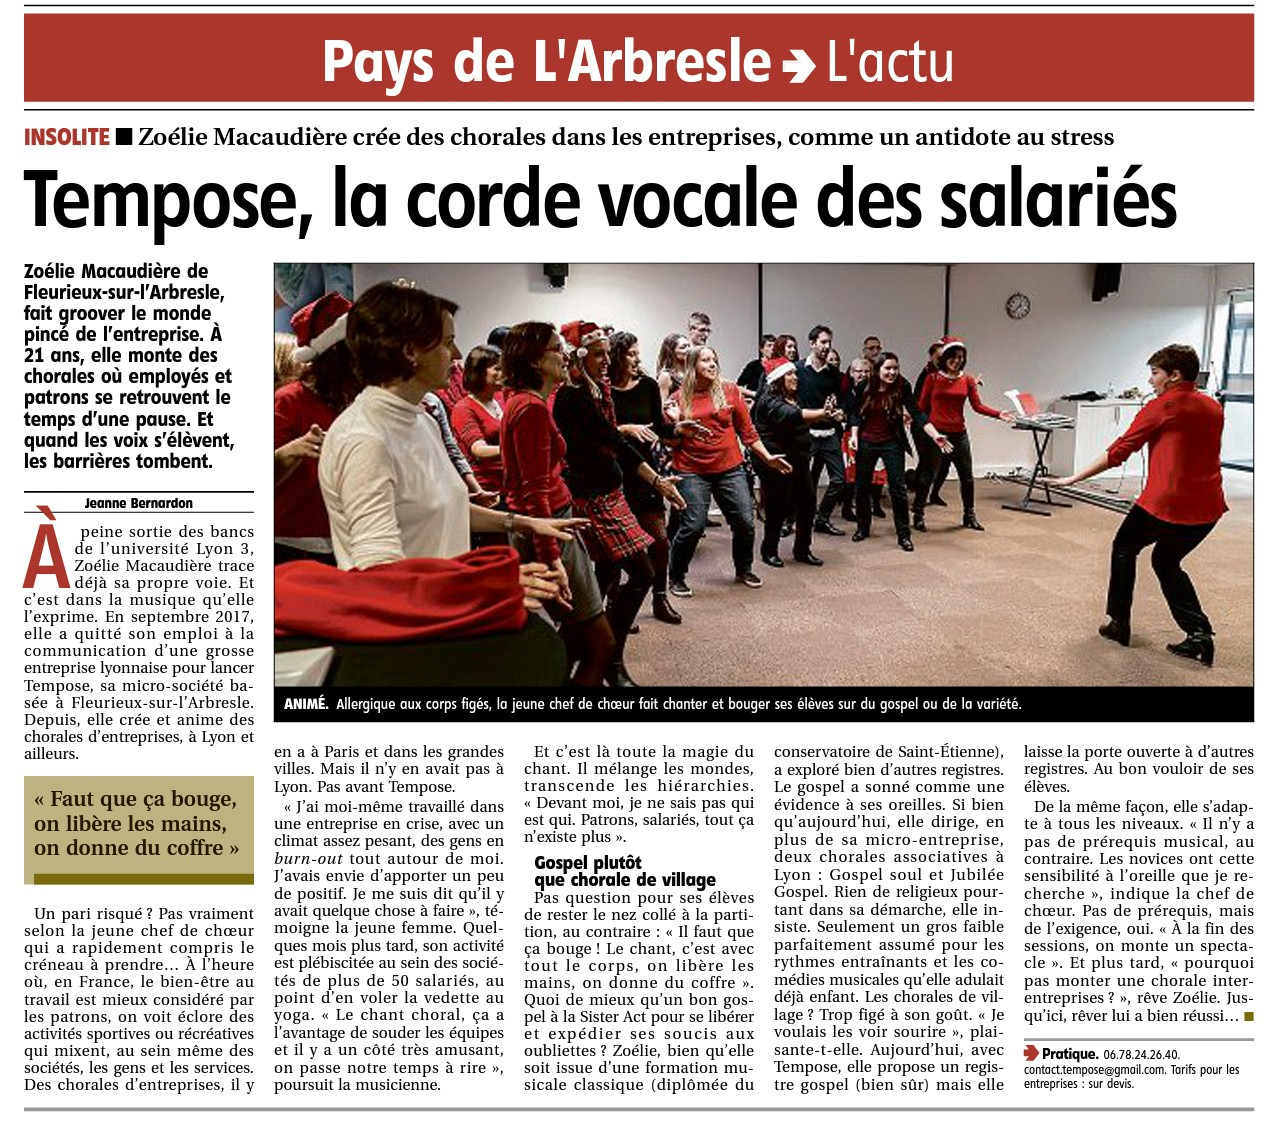 Article Tempose 29 mars 2019